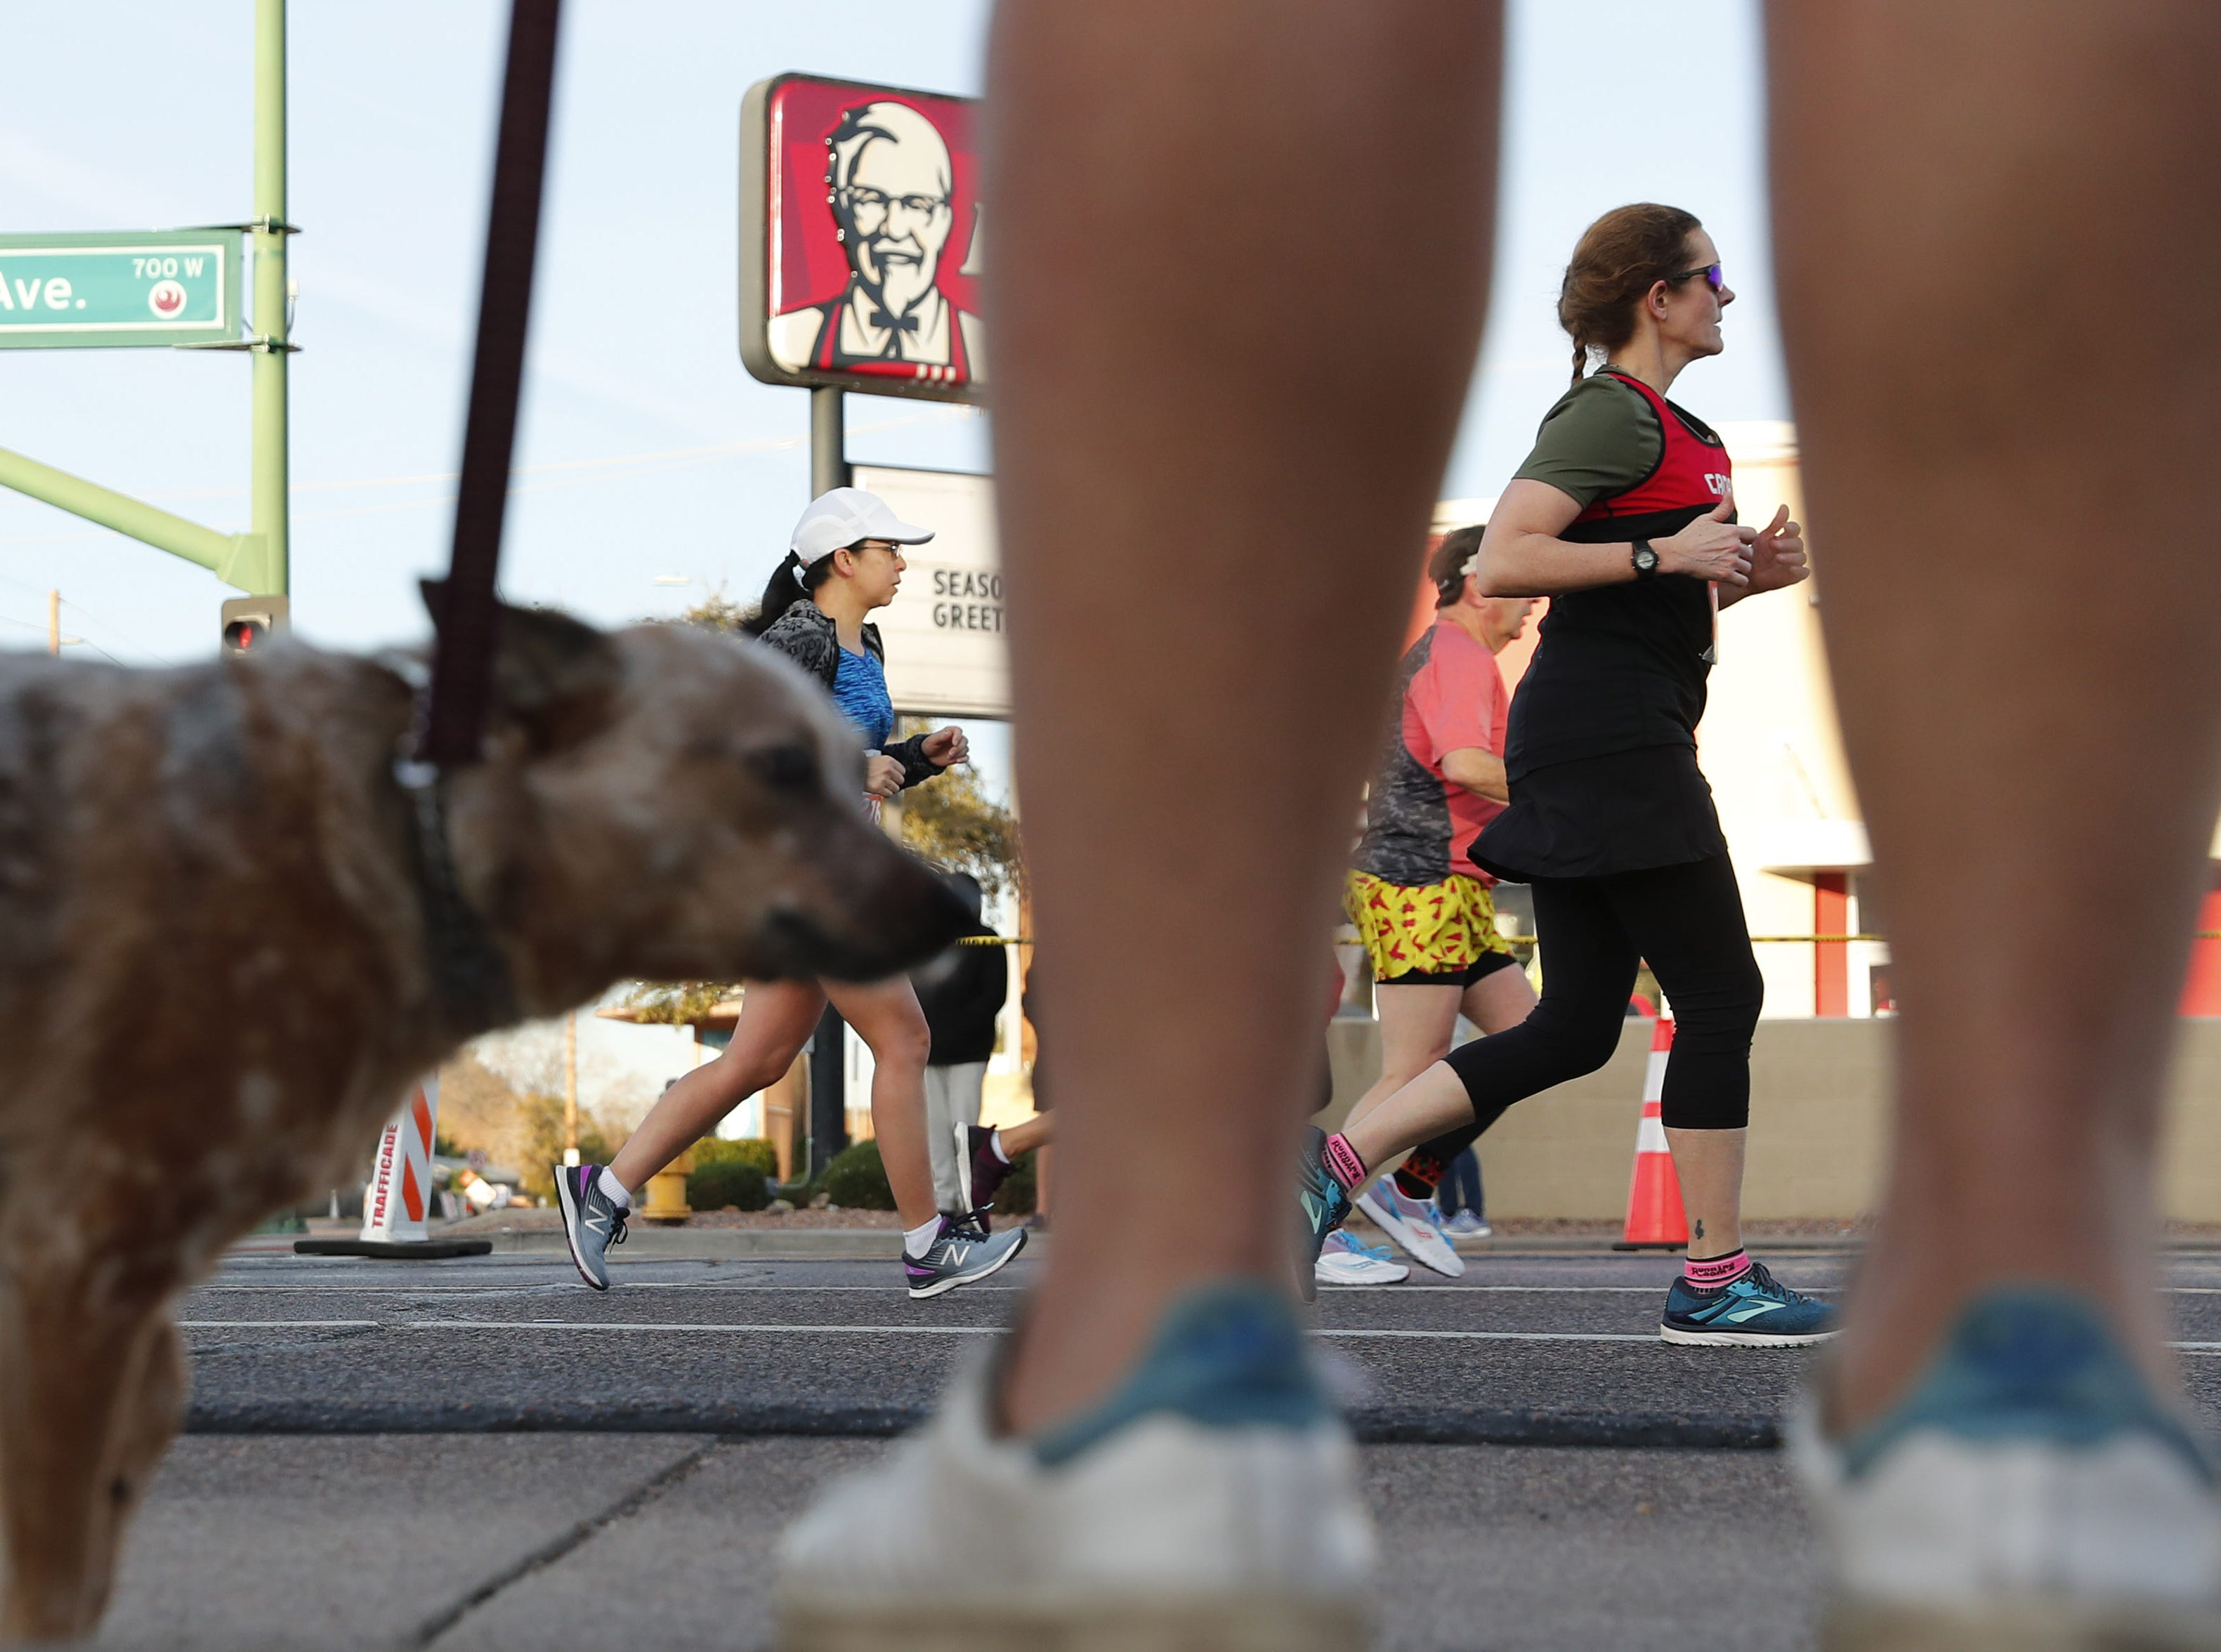 Runners make their way up 7th Ave. during the Rock 'N' Roll Marathon in Phoenix on Jan. 20, 2019.